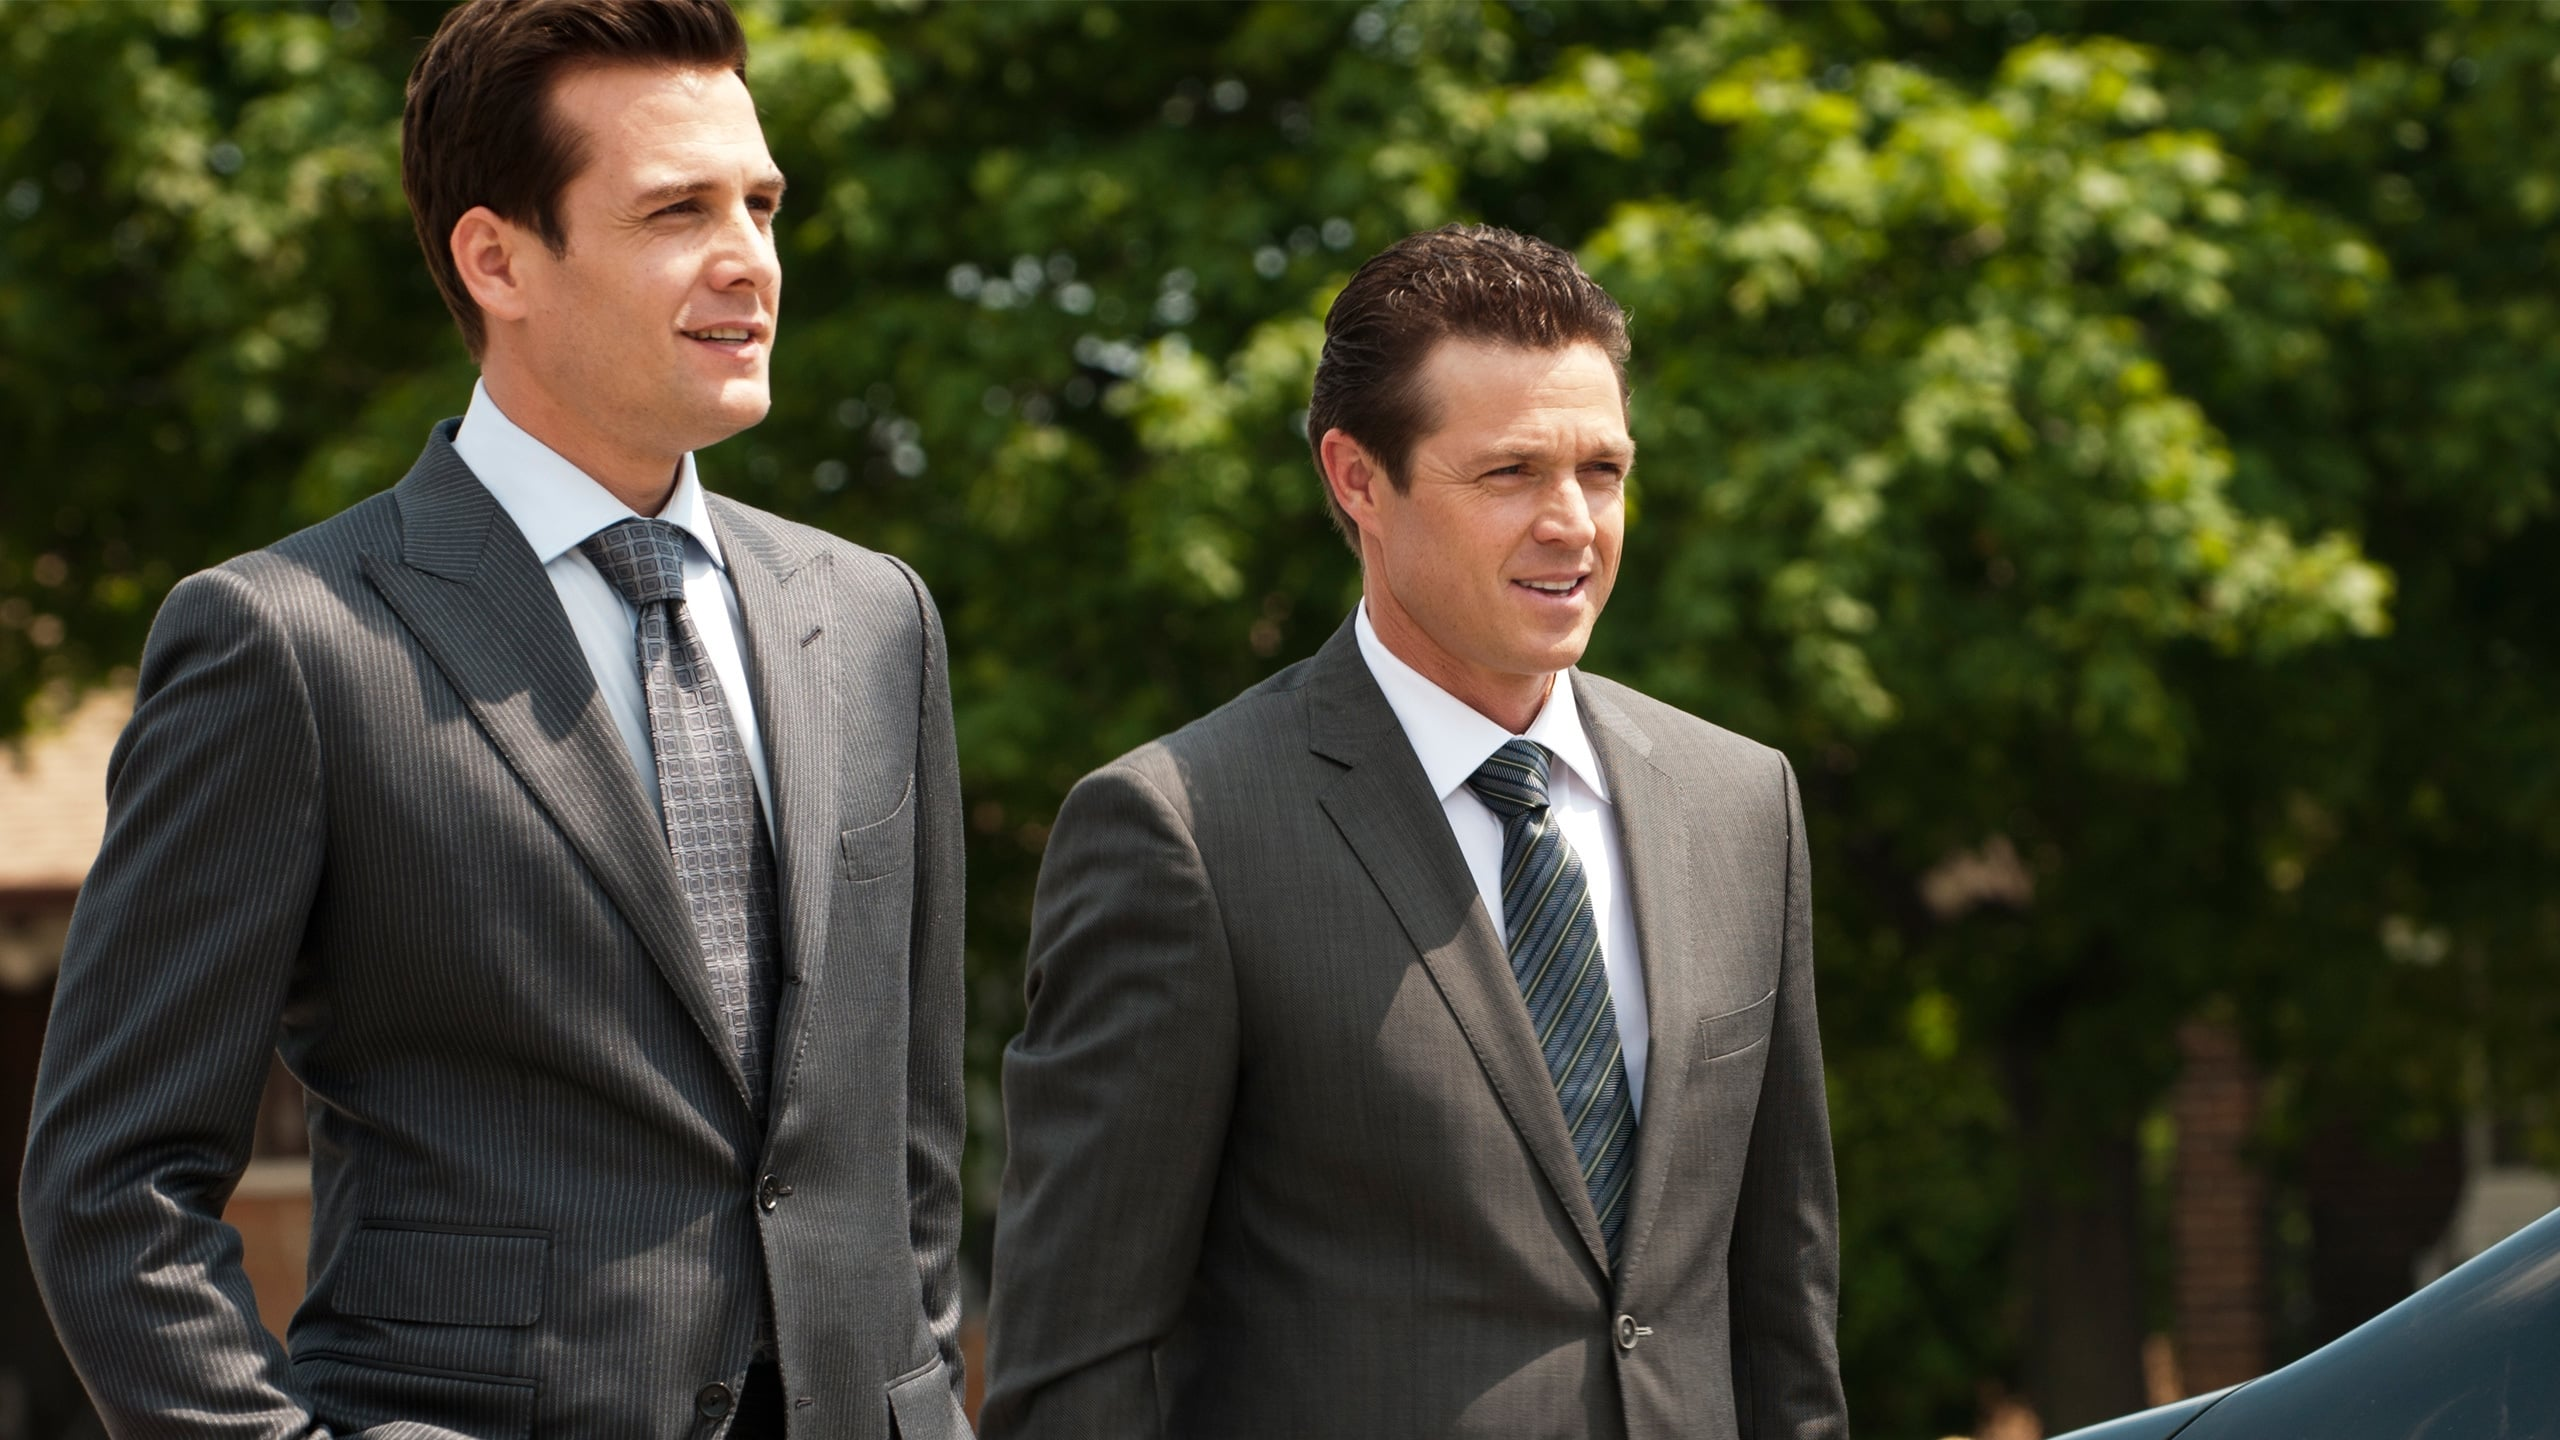 Suits - Season 1 Episode 9 : Undefeated